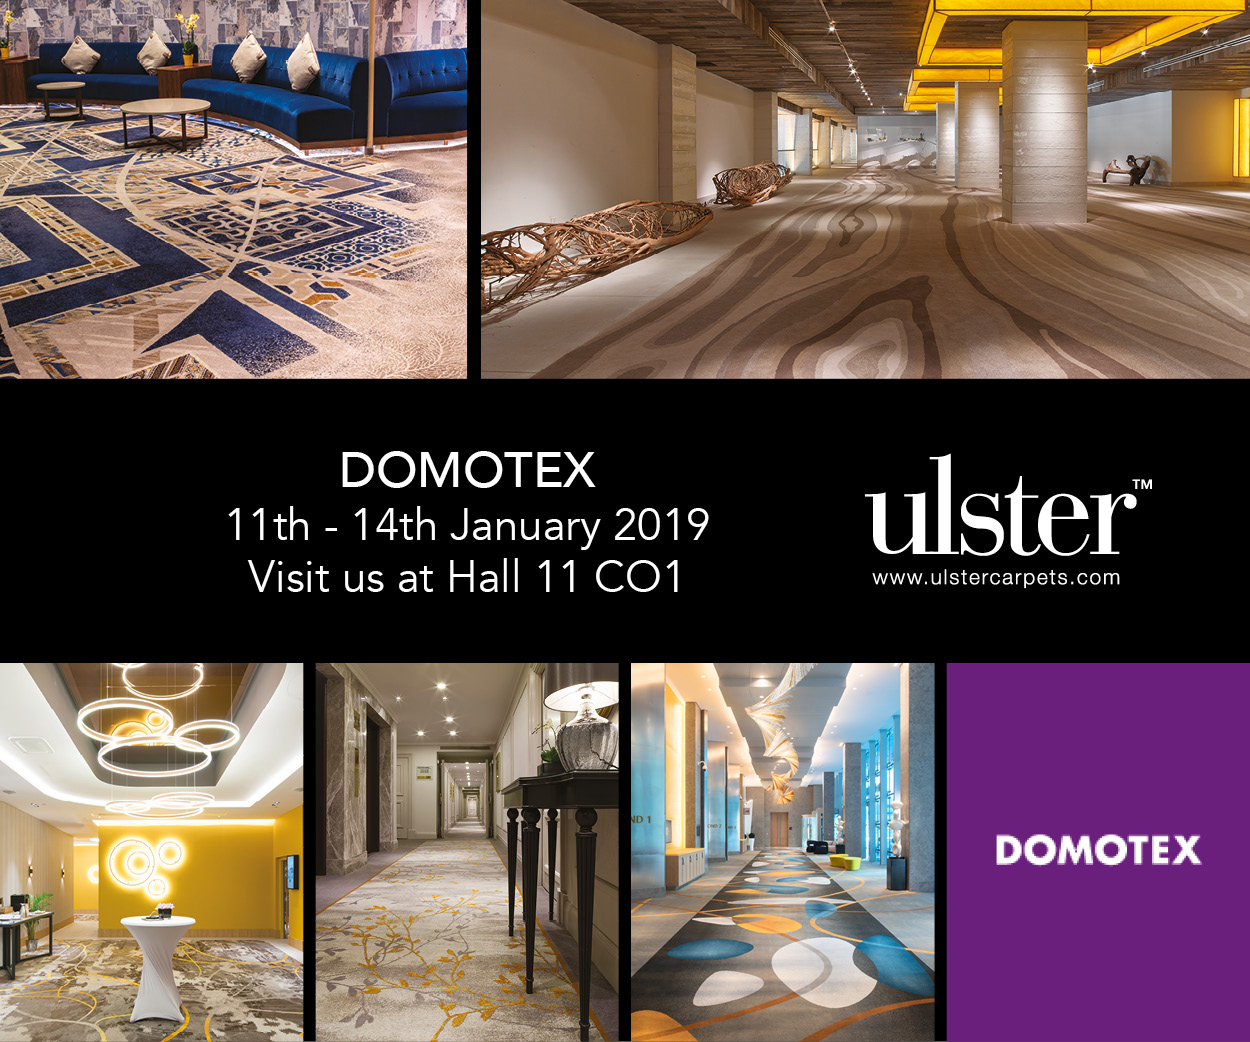 Visit Ulster Carpets and danfloor at Domotex 2019